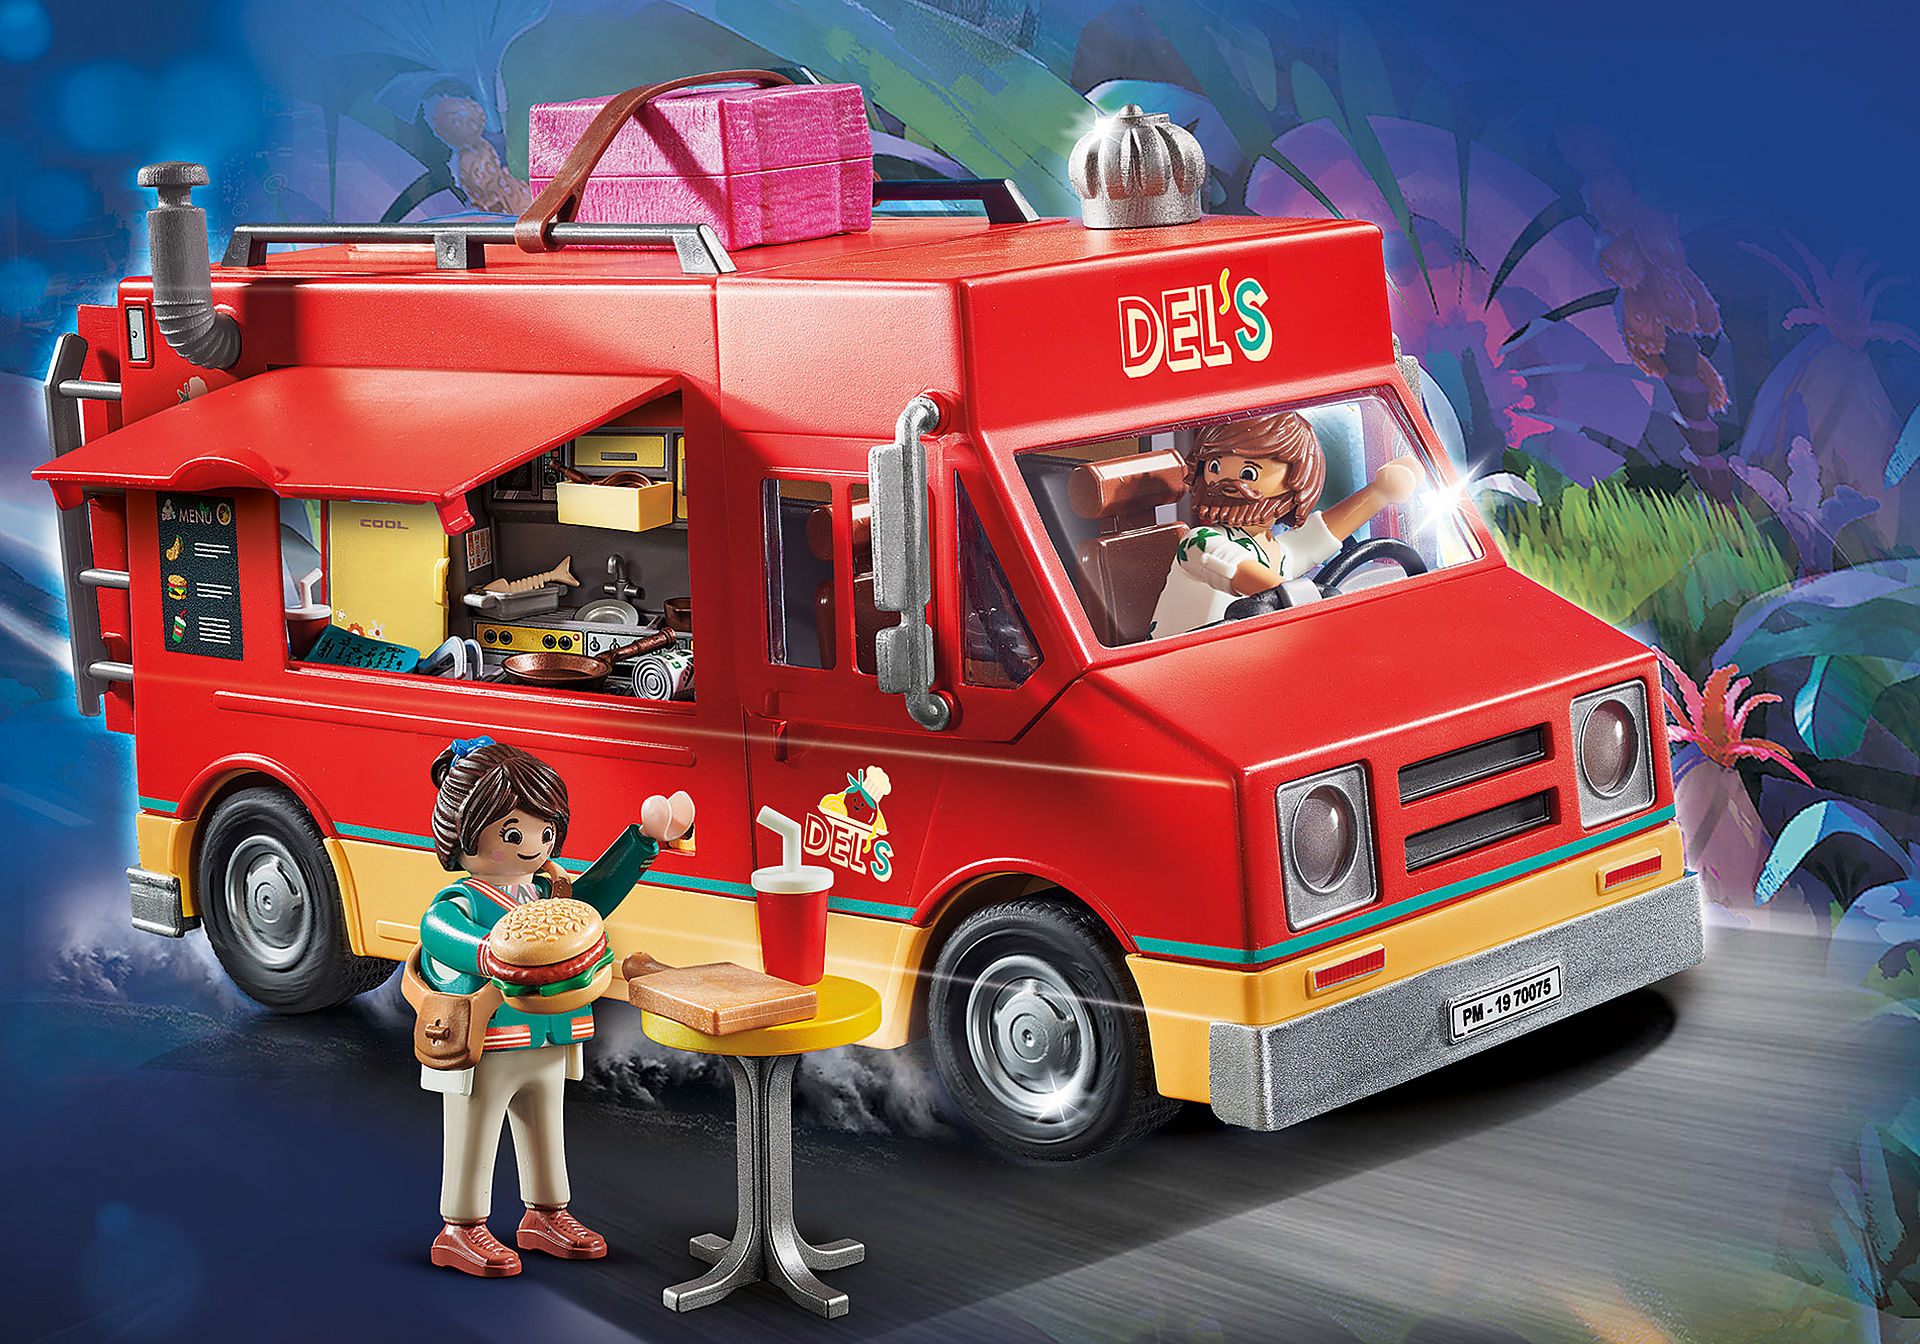 70075 PLAYMOBIL:THE MOVIE Del's Food Truck zoom image1